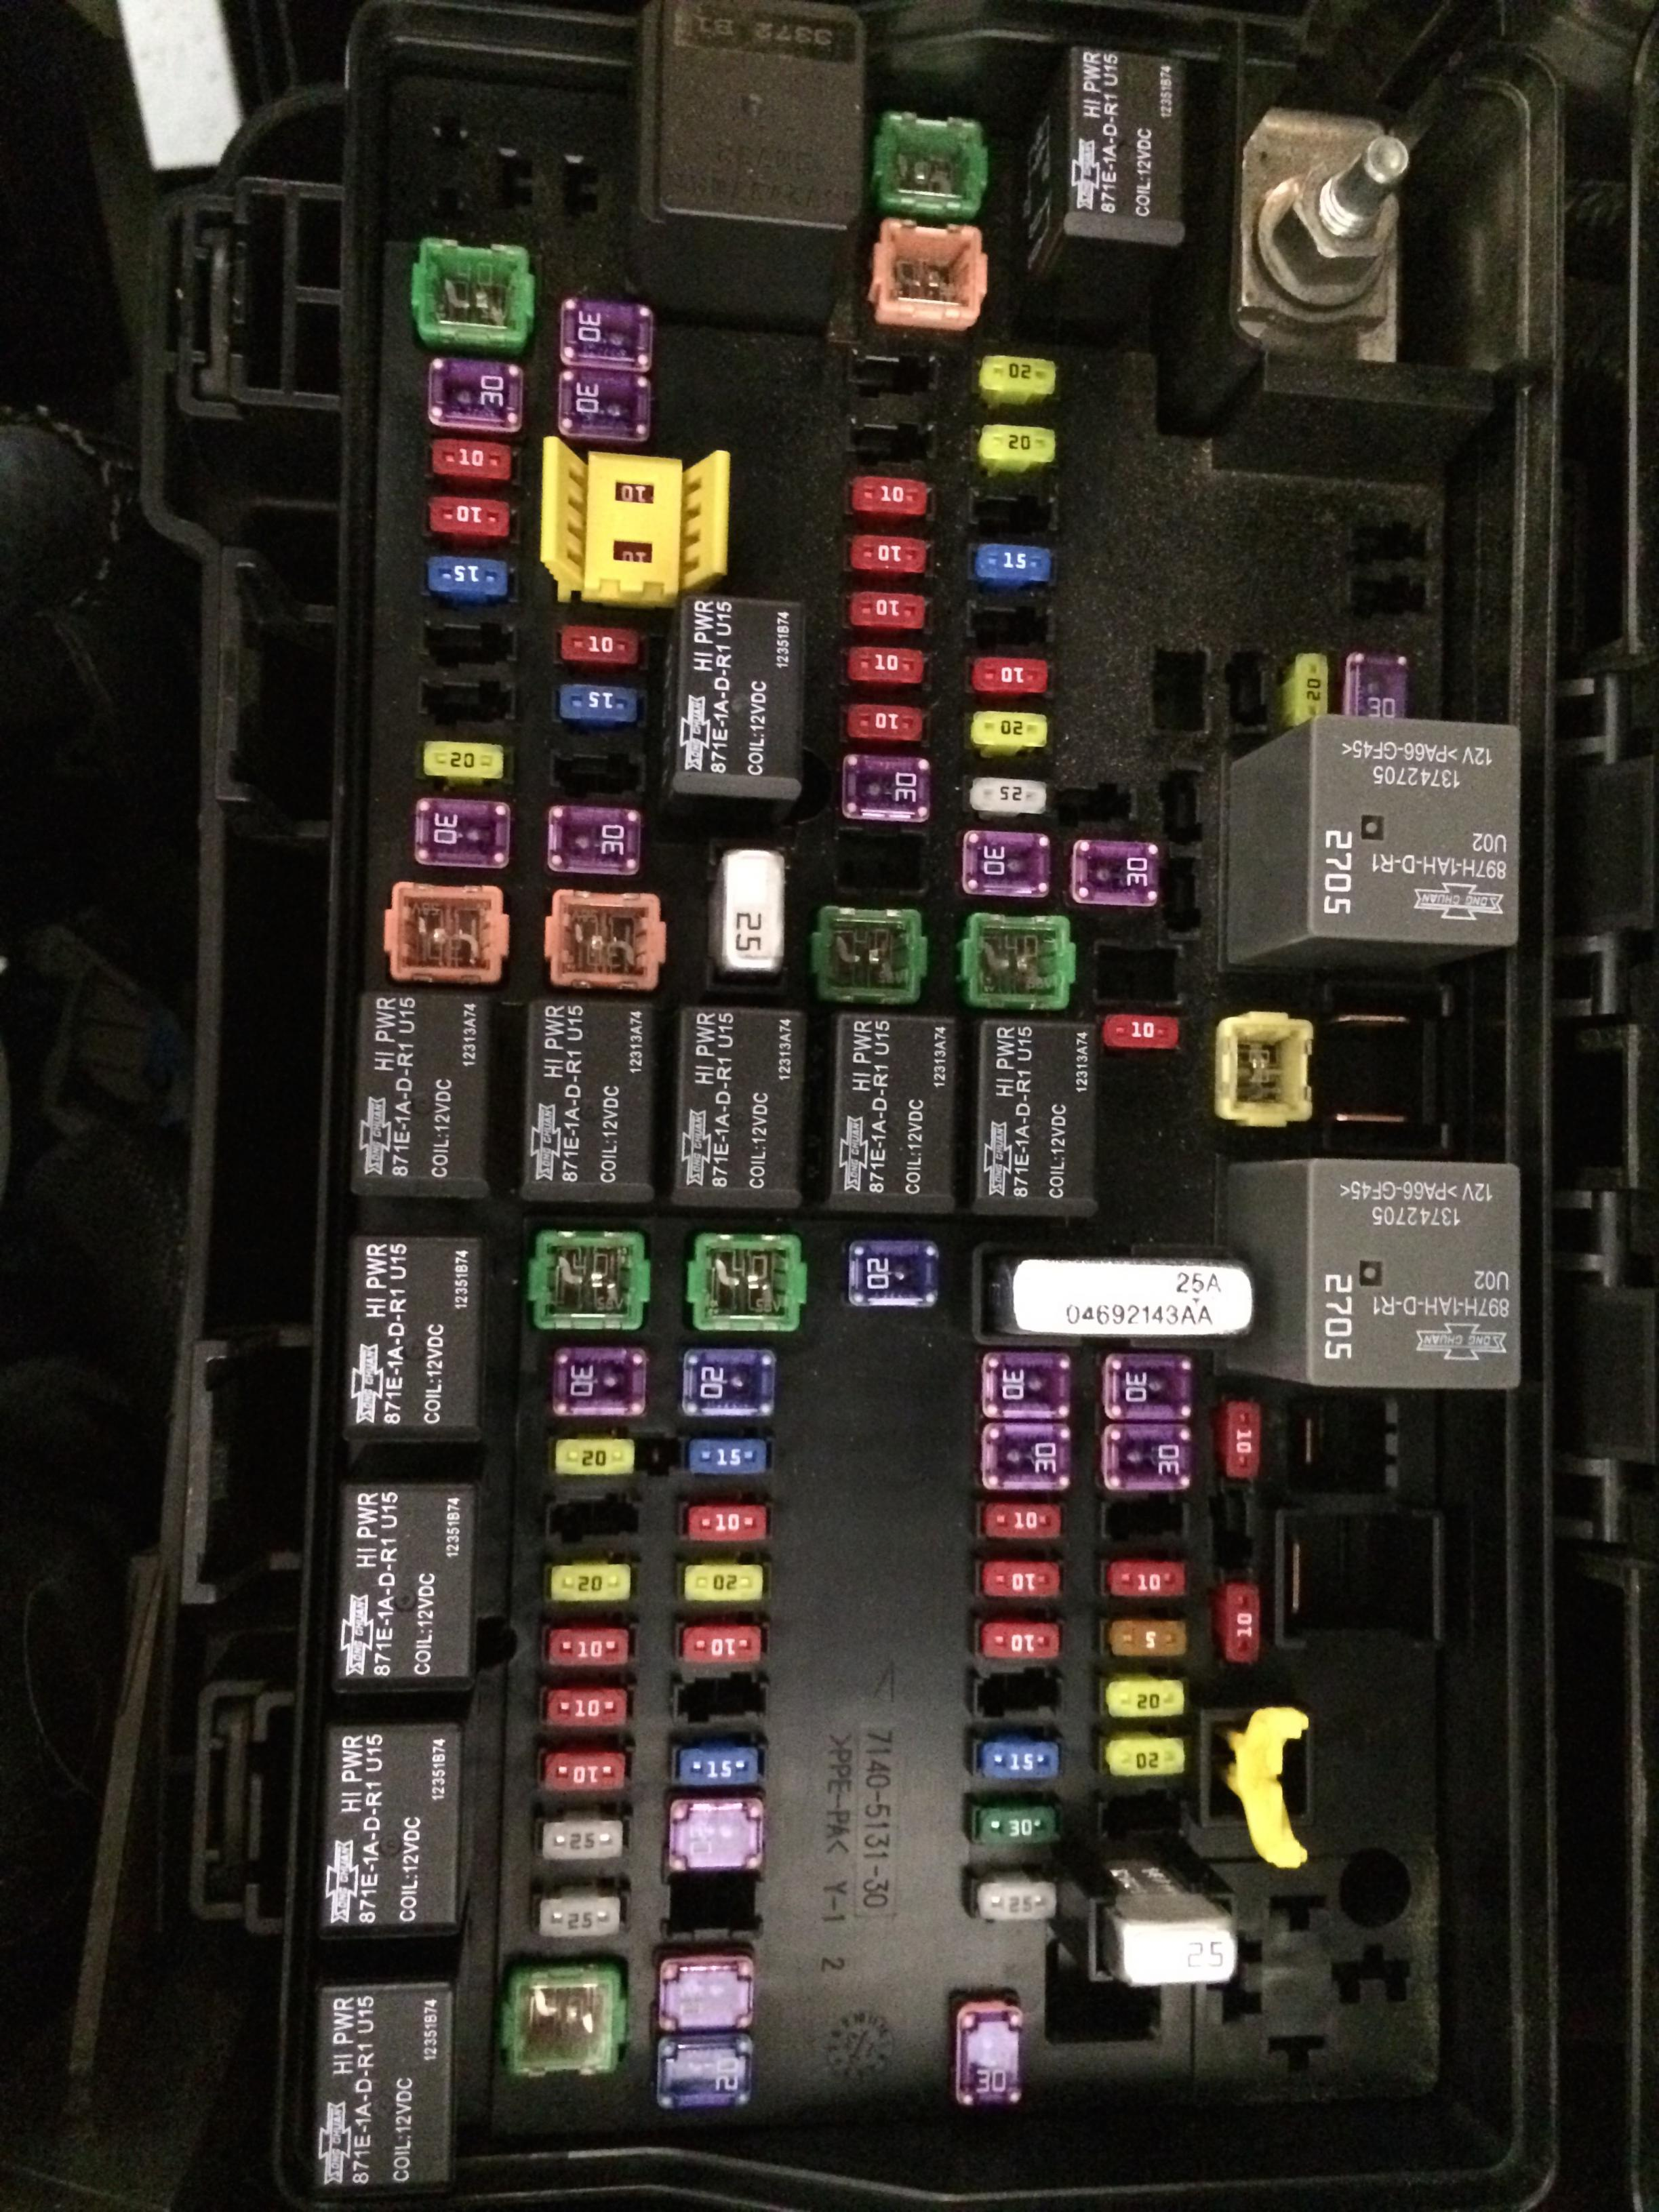 2014 Ram 2500 Fuse Box Wiring Diagram Schemes \u2022 Chrysler 300 Fuse Box  2014 Ram 3500 Fuse Box